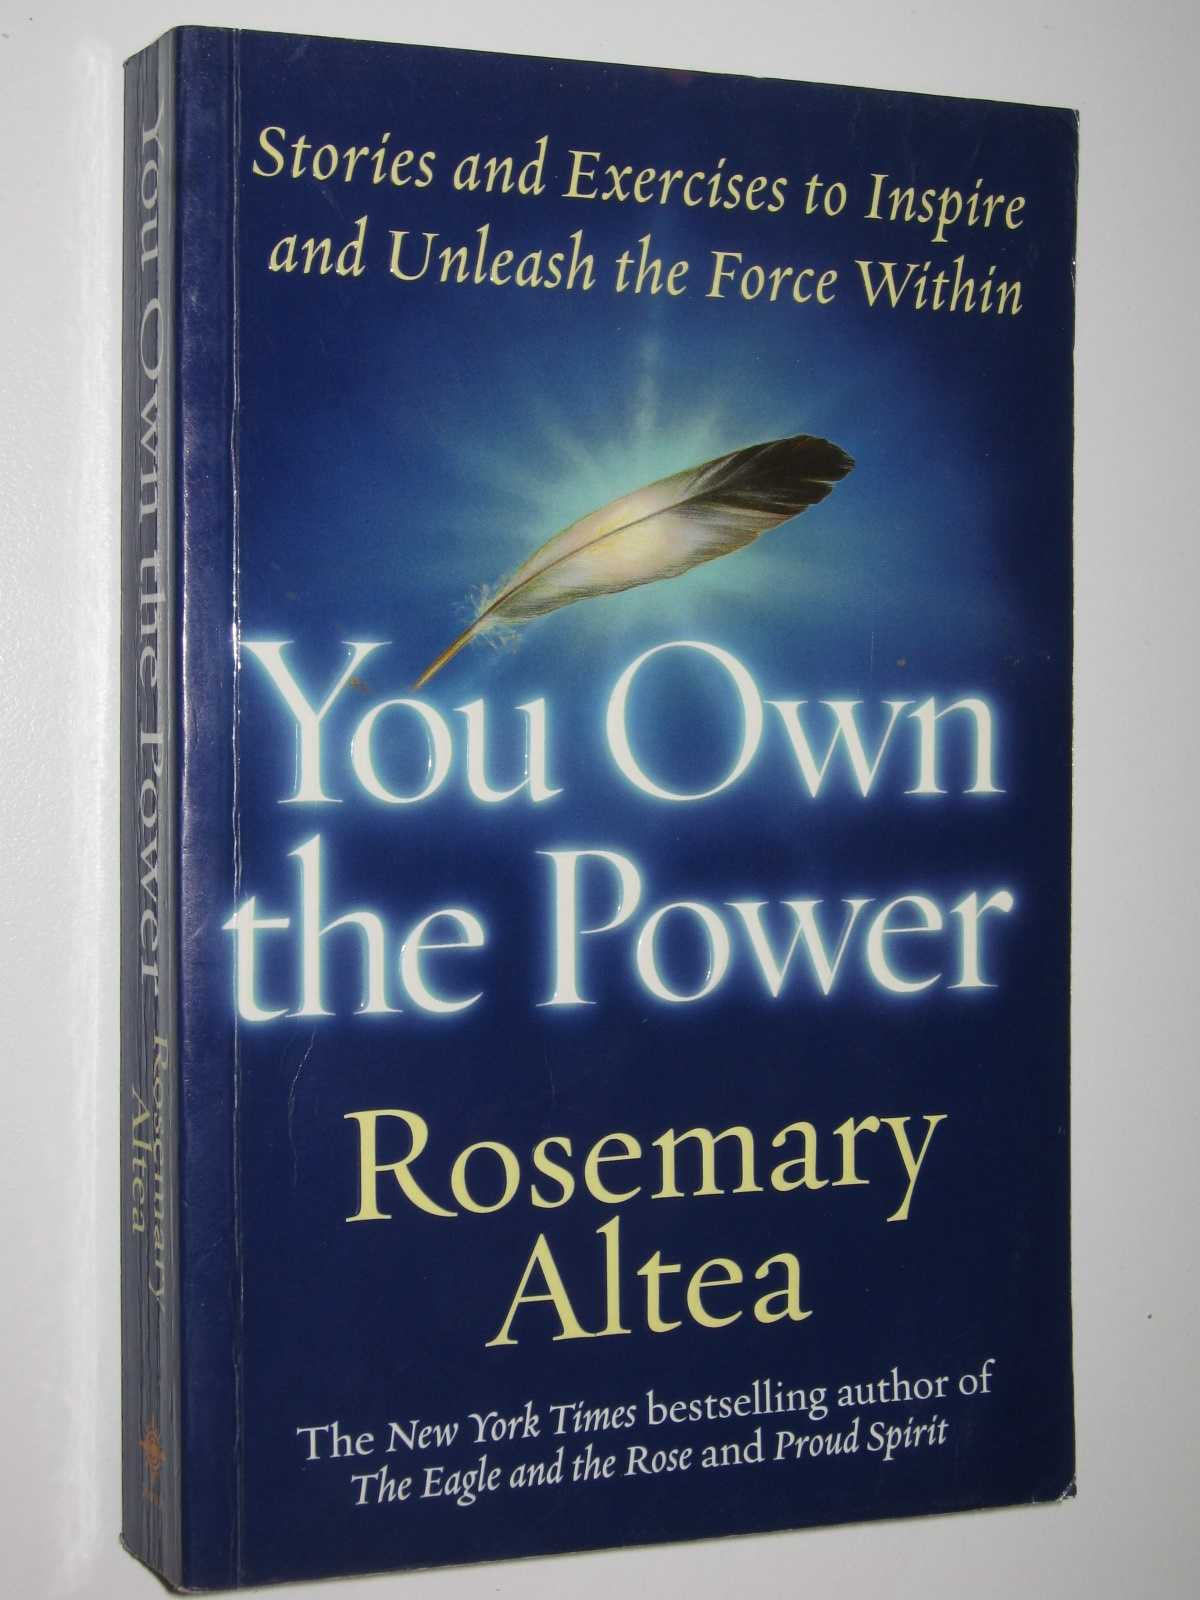 Image for You Own the Power : Stories and Exercises to Inspire and Unleash the Force Within